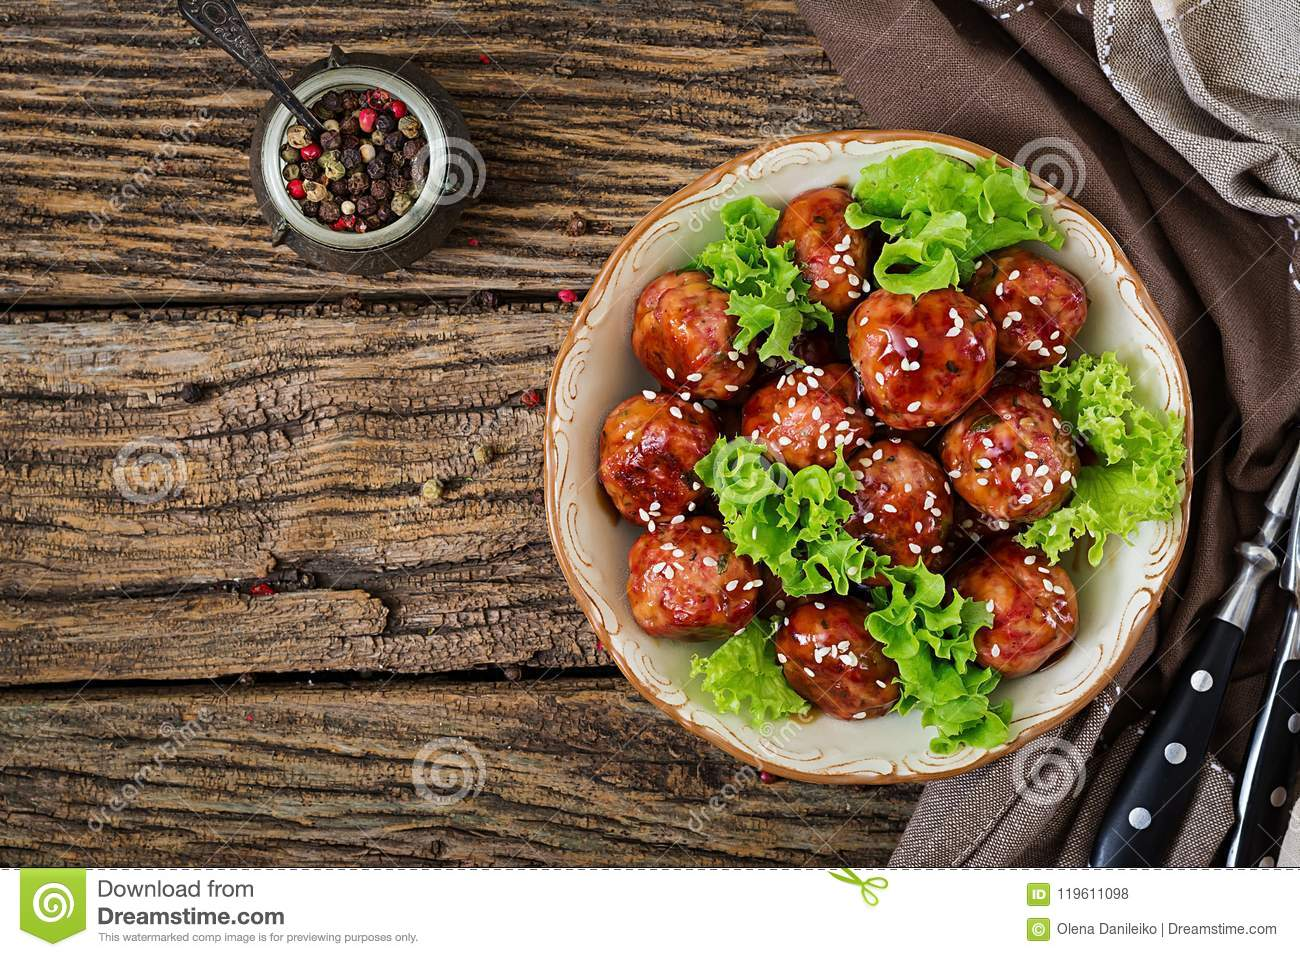 Meatballs with beef in sweet and sour sauce. Asian food.